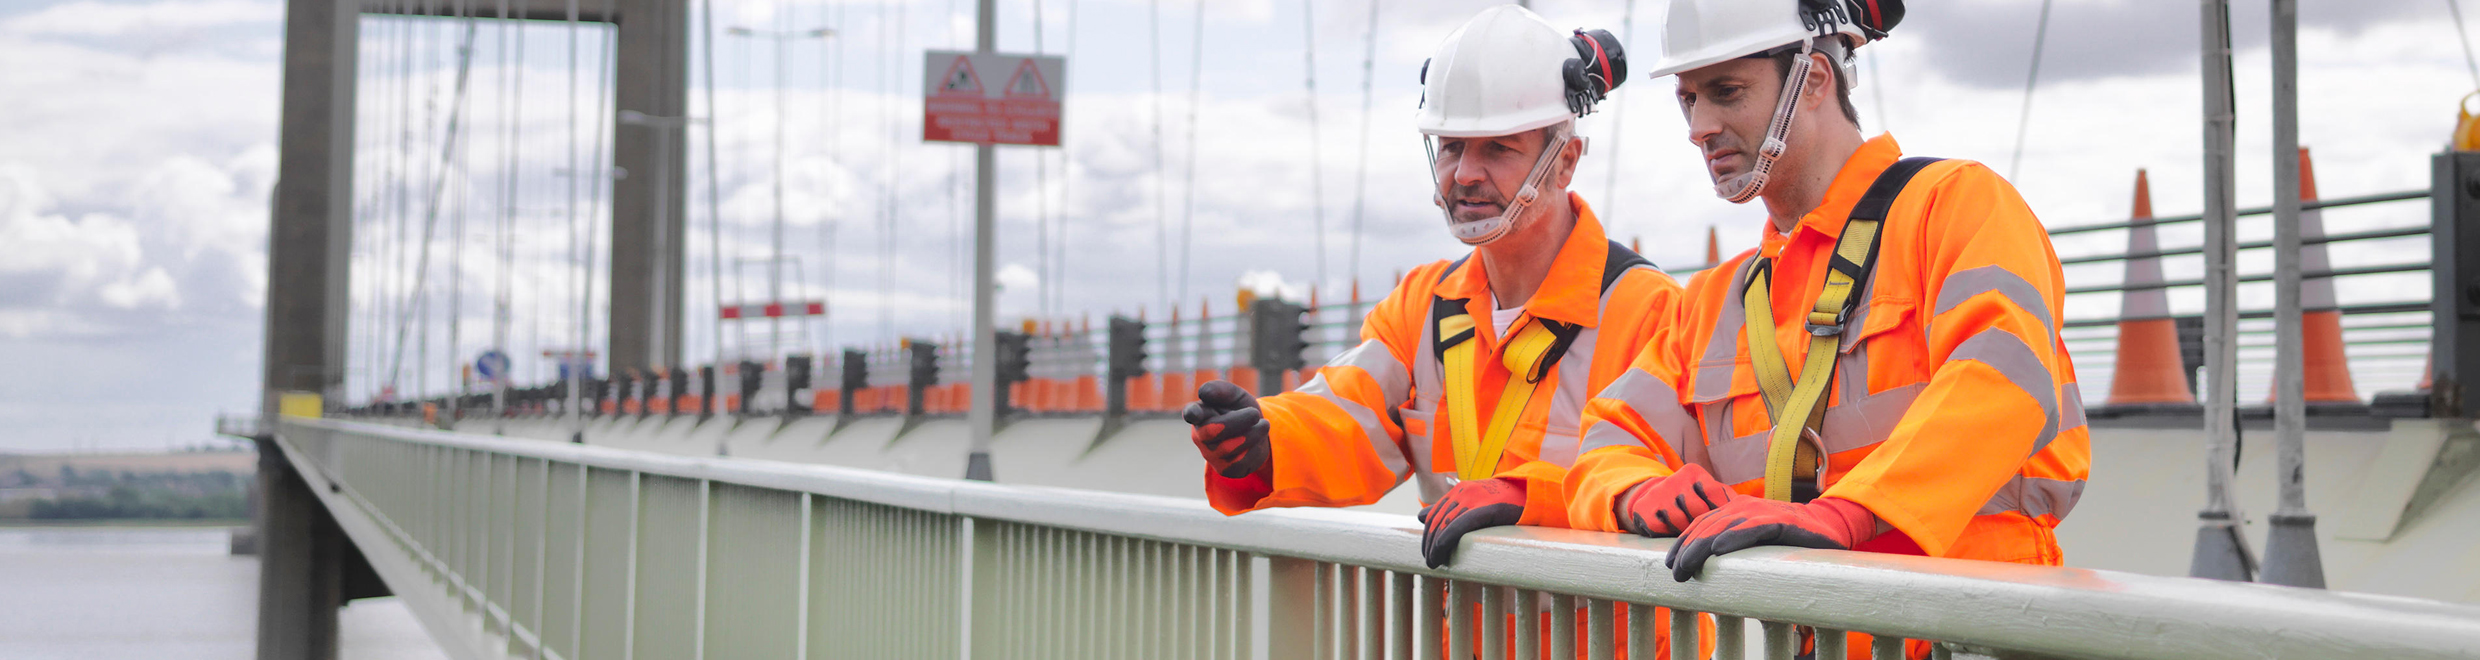 Bridge Workers in orange PPE